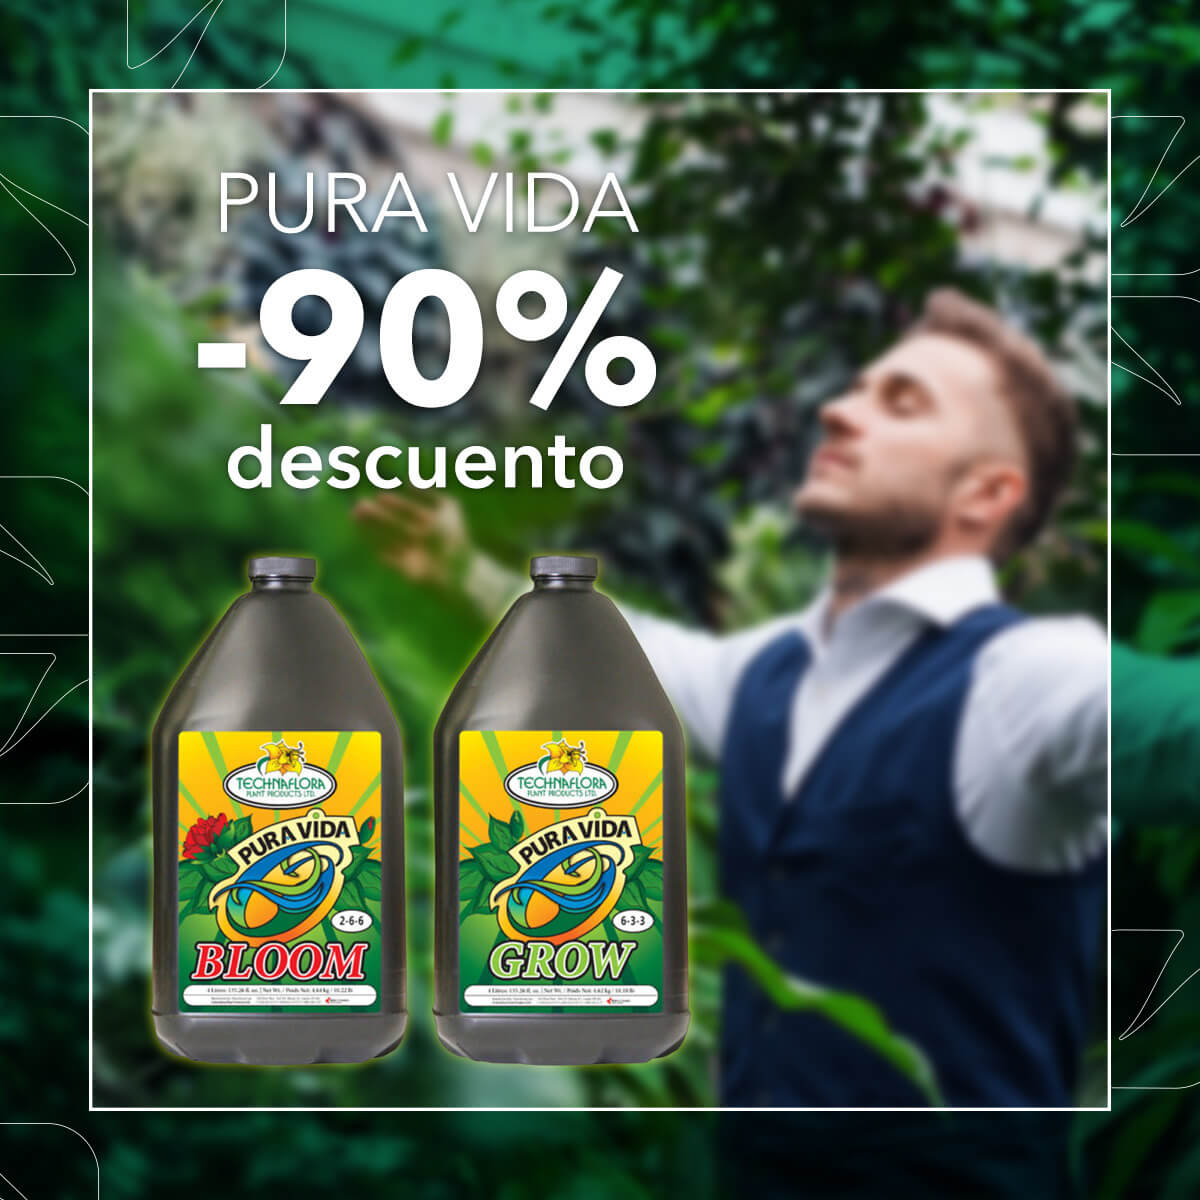 Promoción Pura Vida Bloom + Grow